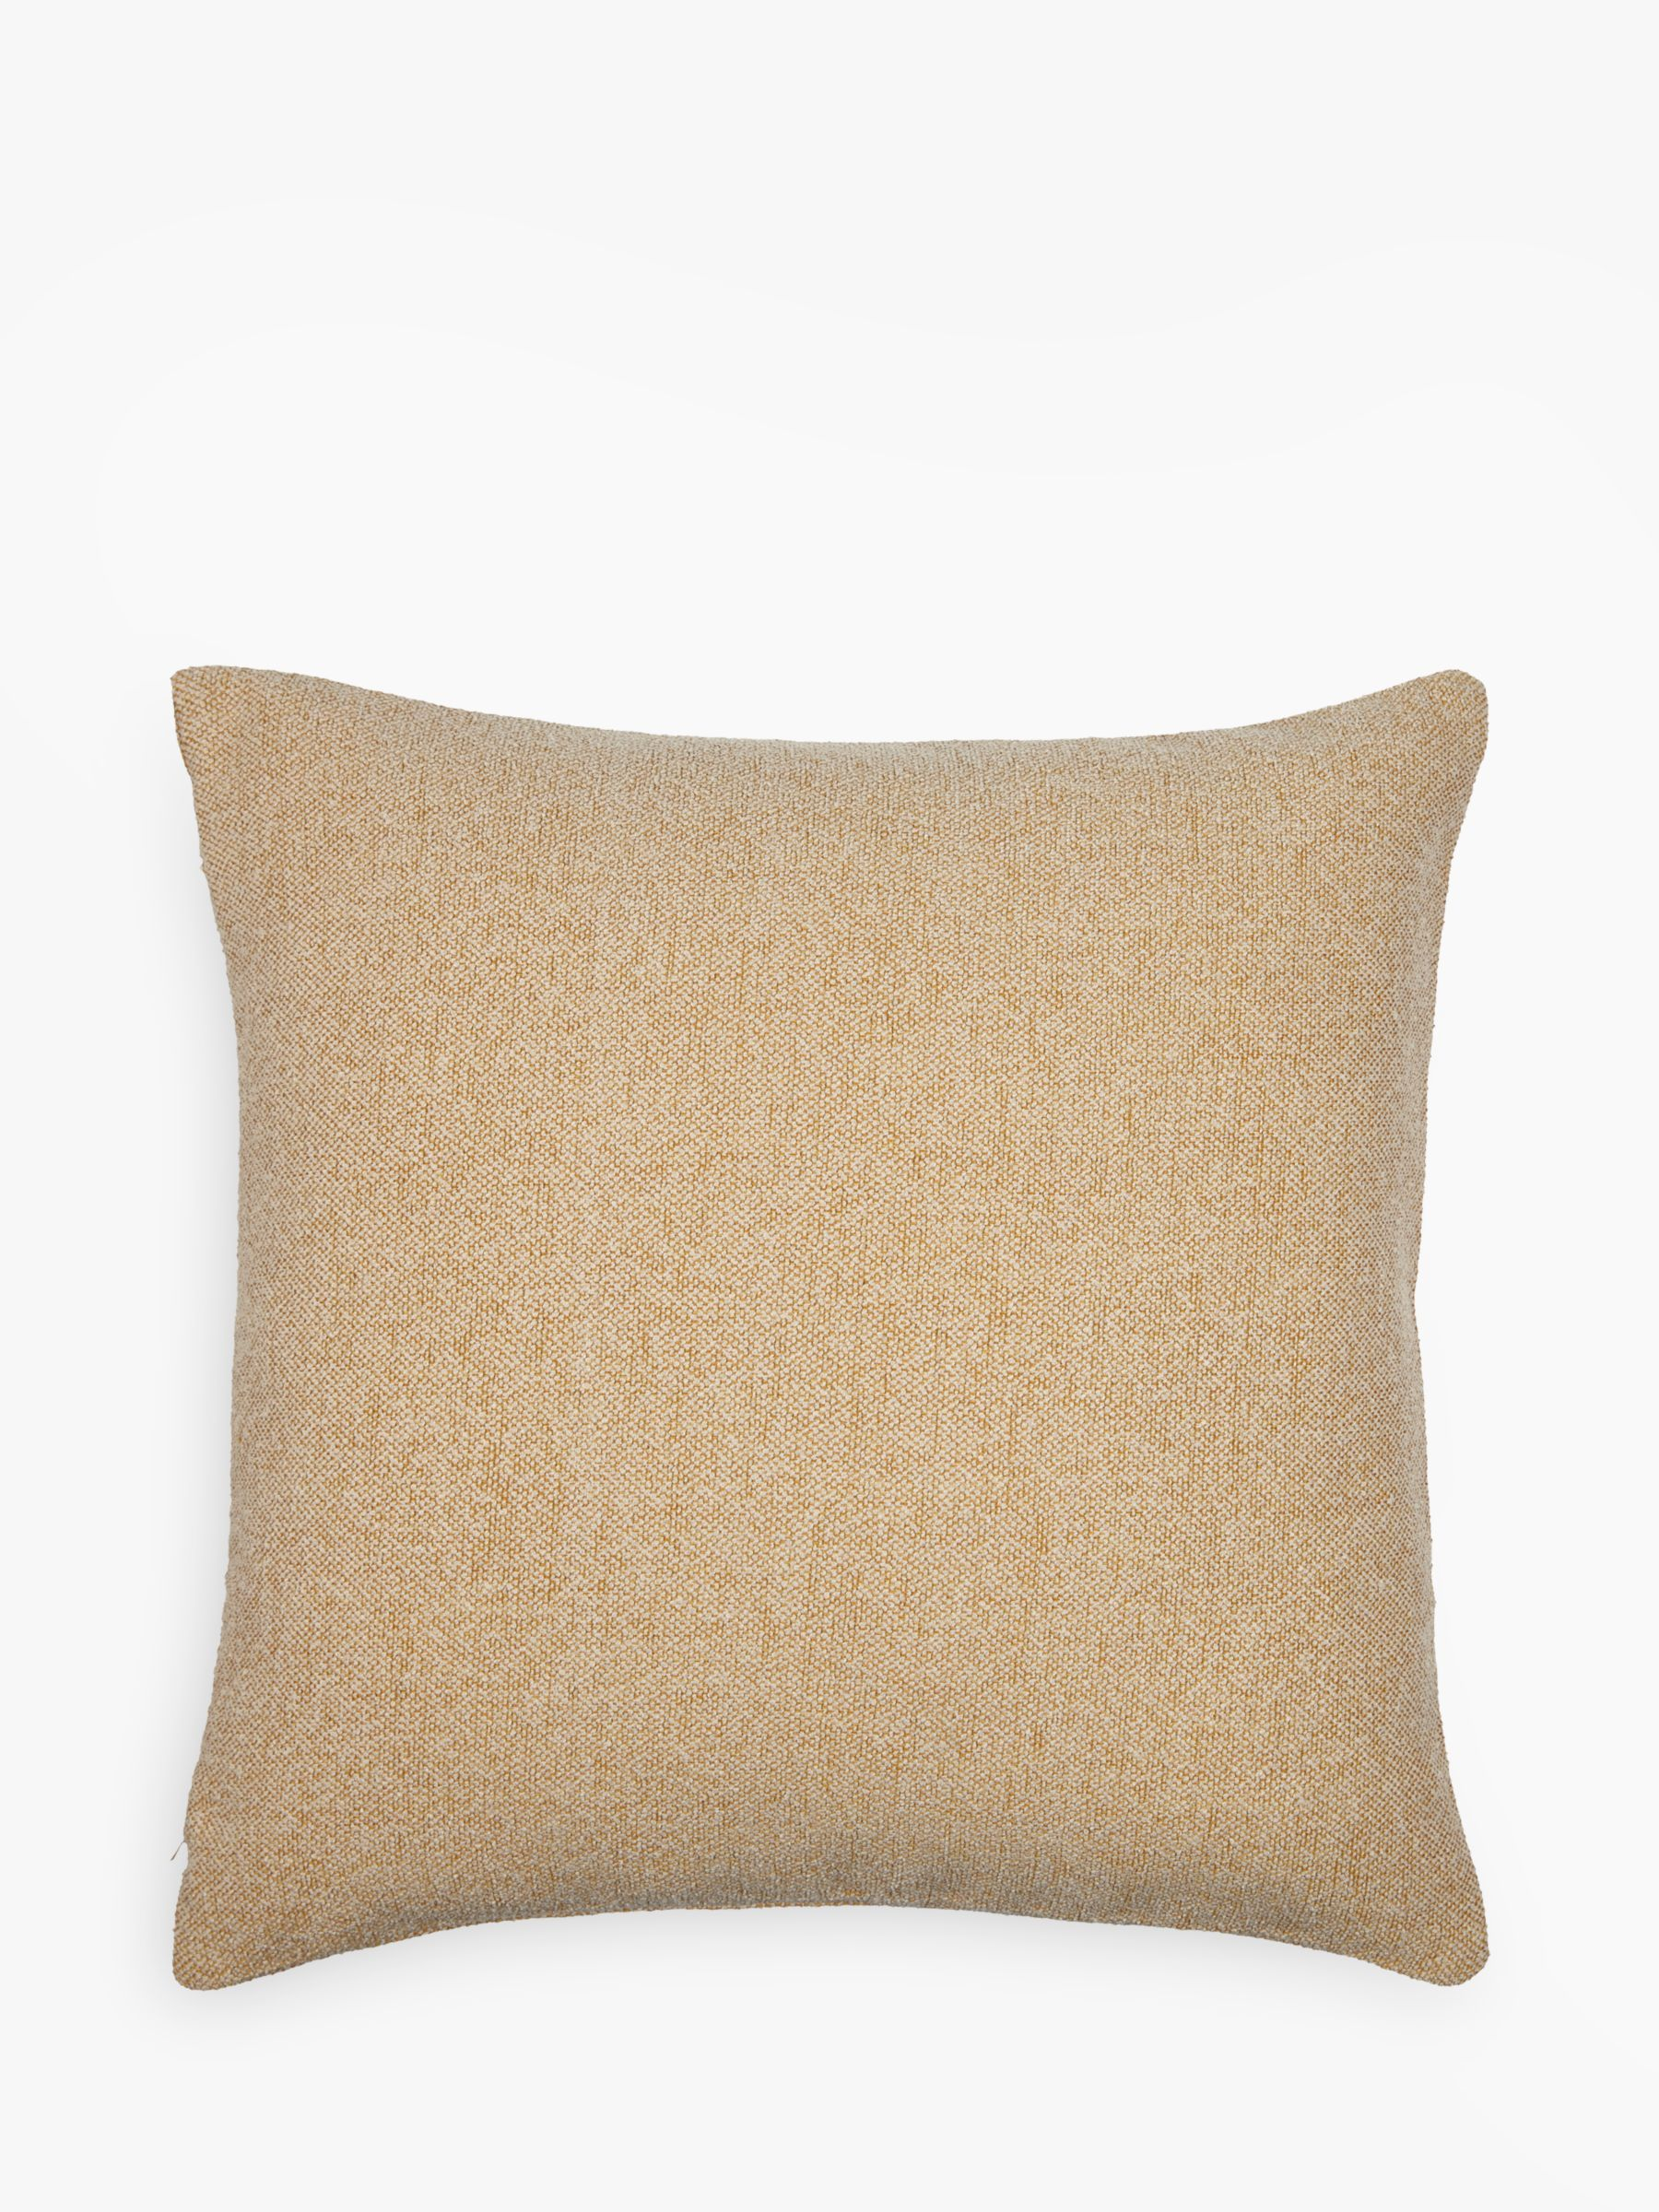 Design Project by John Lewis Design Project by John Lewis No.033 Cushion